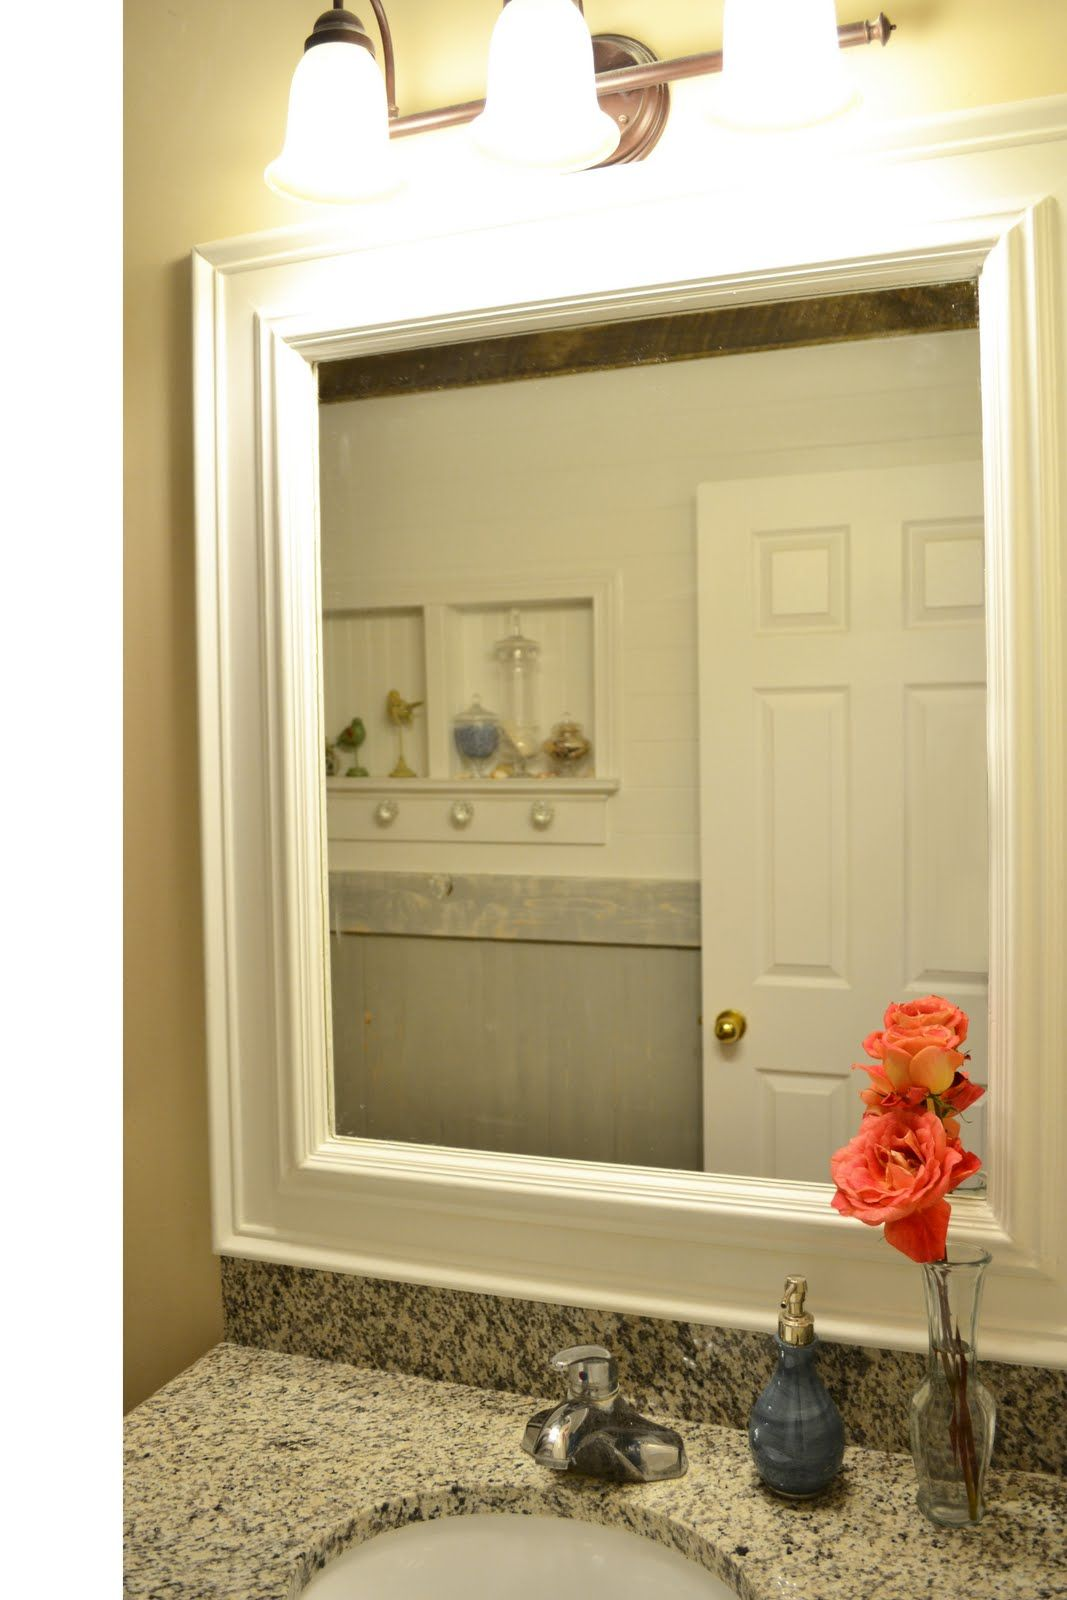 Trim around mirrors deck out my home what you can do - Decorative trim for bathroom mirrors ...